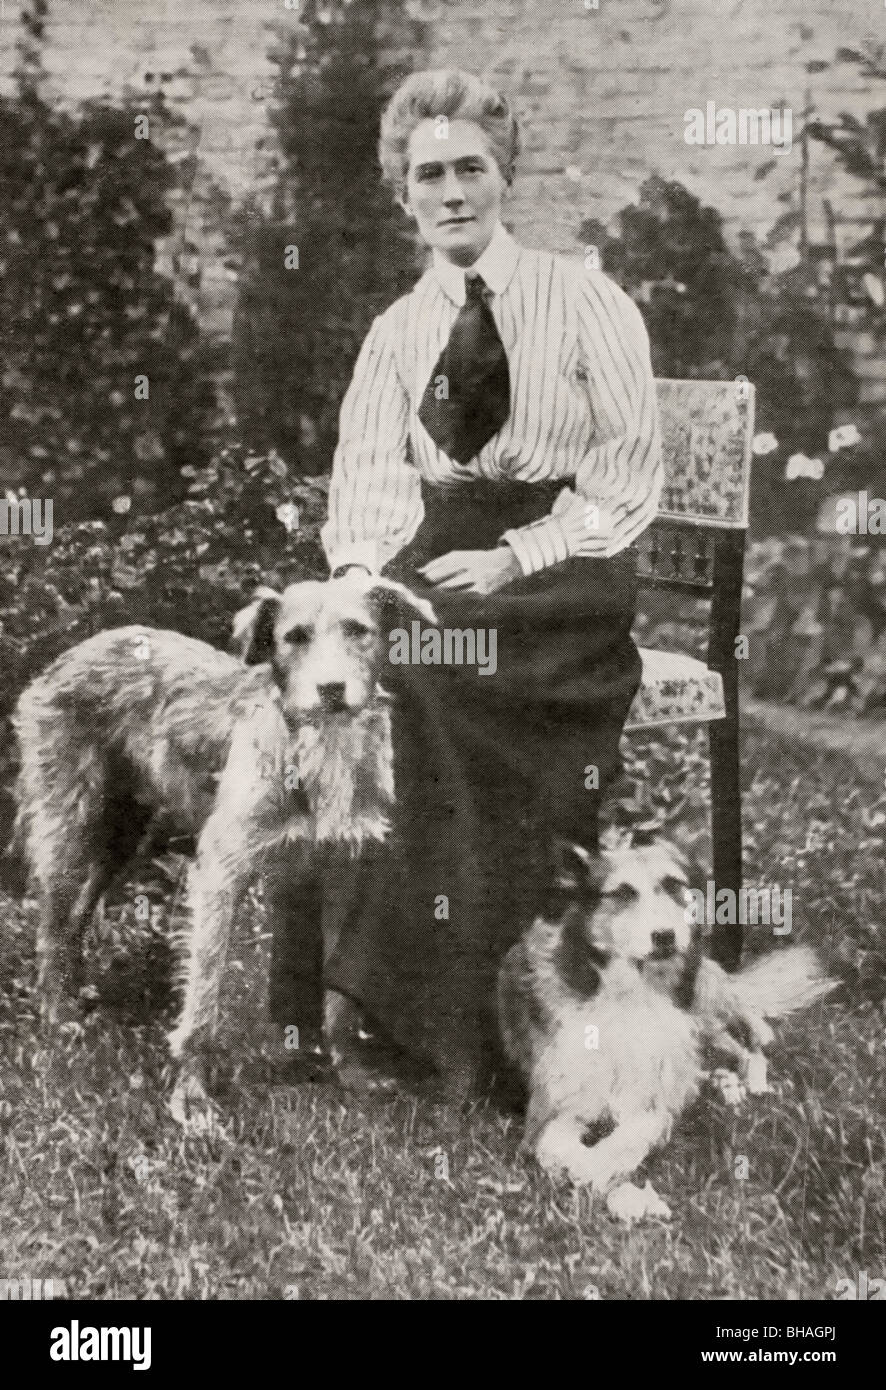 Edith Louisa Cavell, 1865 to 1915. British nurse and humanitarian executed in First World War. - Stock Image